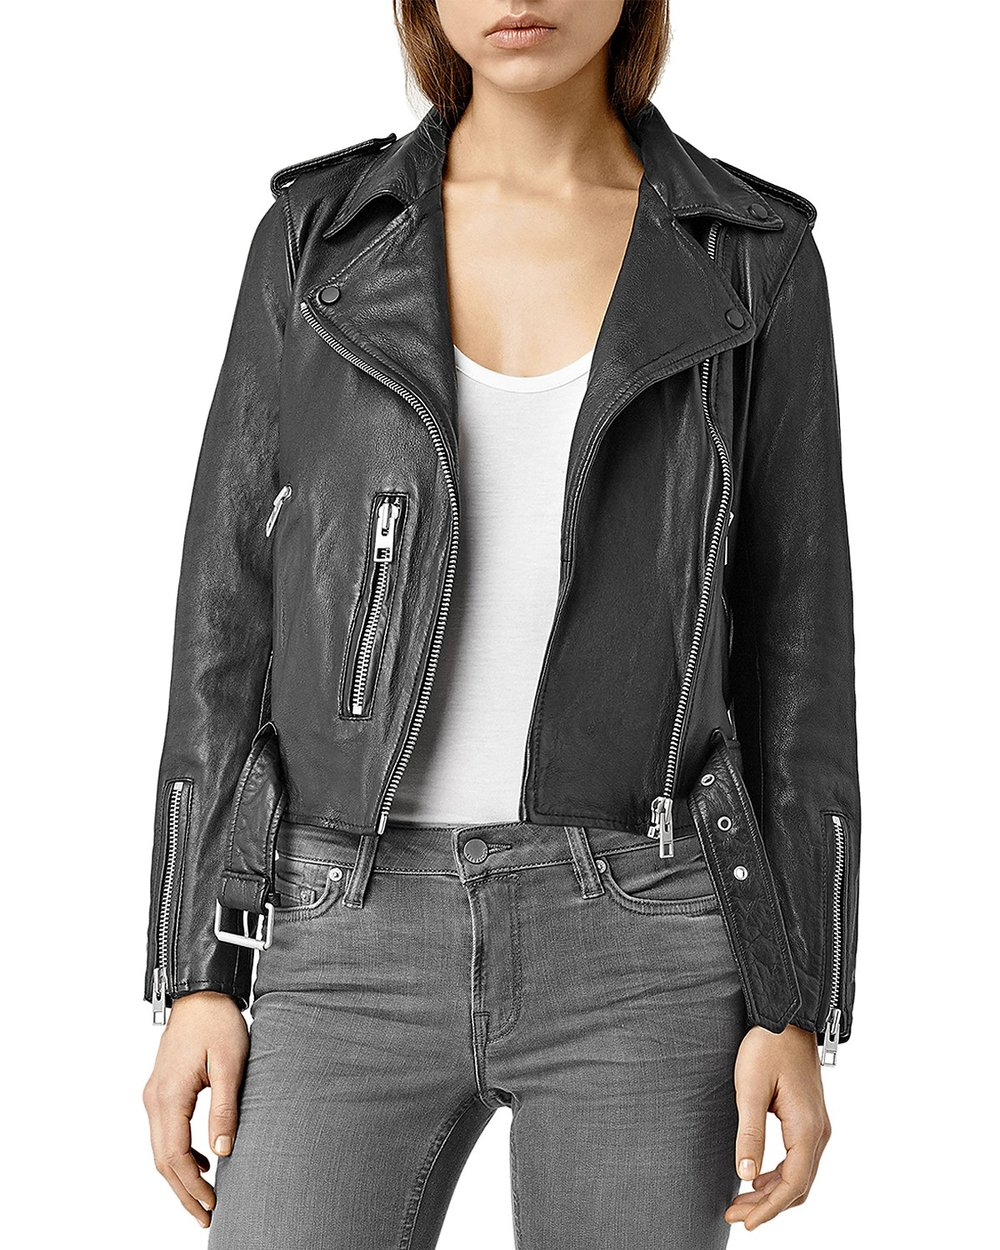 All Saints Balfern Biker Jacket - I have been lusting after this jacket for months and I have finally decided to take the plunge and buy it- and I am already so in love with it. This jacket is buttery soft, warm, and endlessly chic- and it goes with essentially everything I already own.